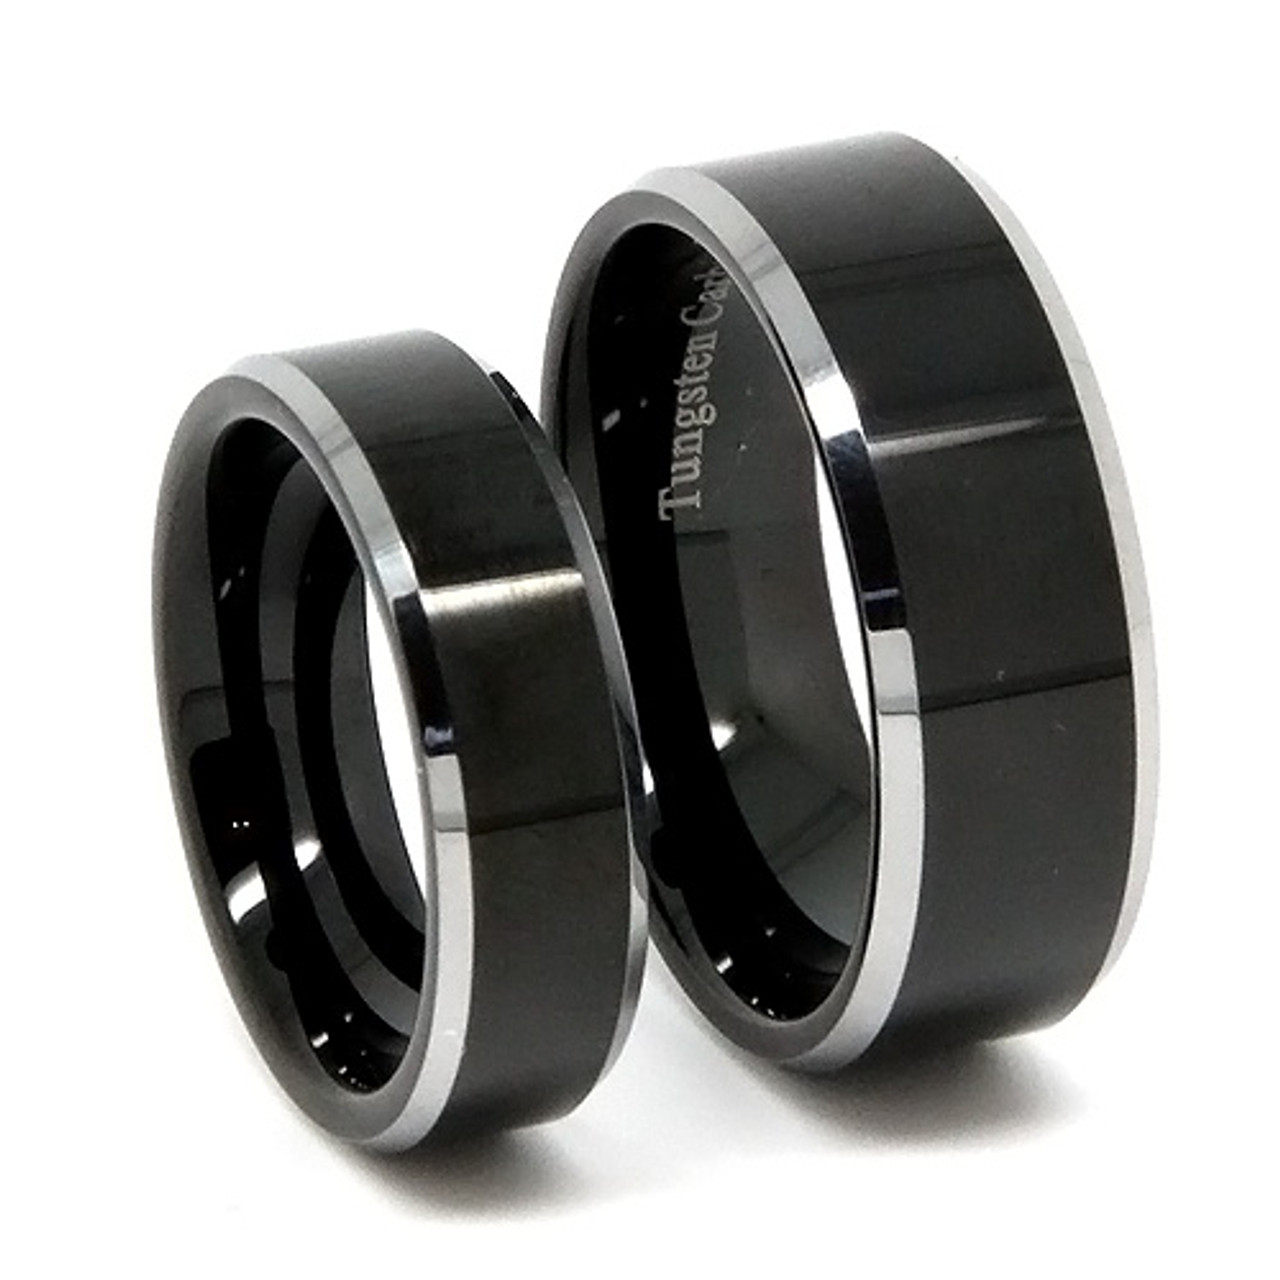 Black Tungsten Wedding Band Set, Classy Matching Set, Flat Top, Bevel Edge,  High Polish, 8MM and 6MM